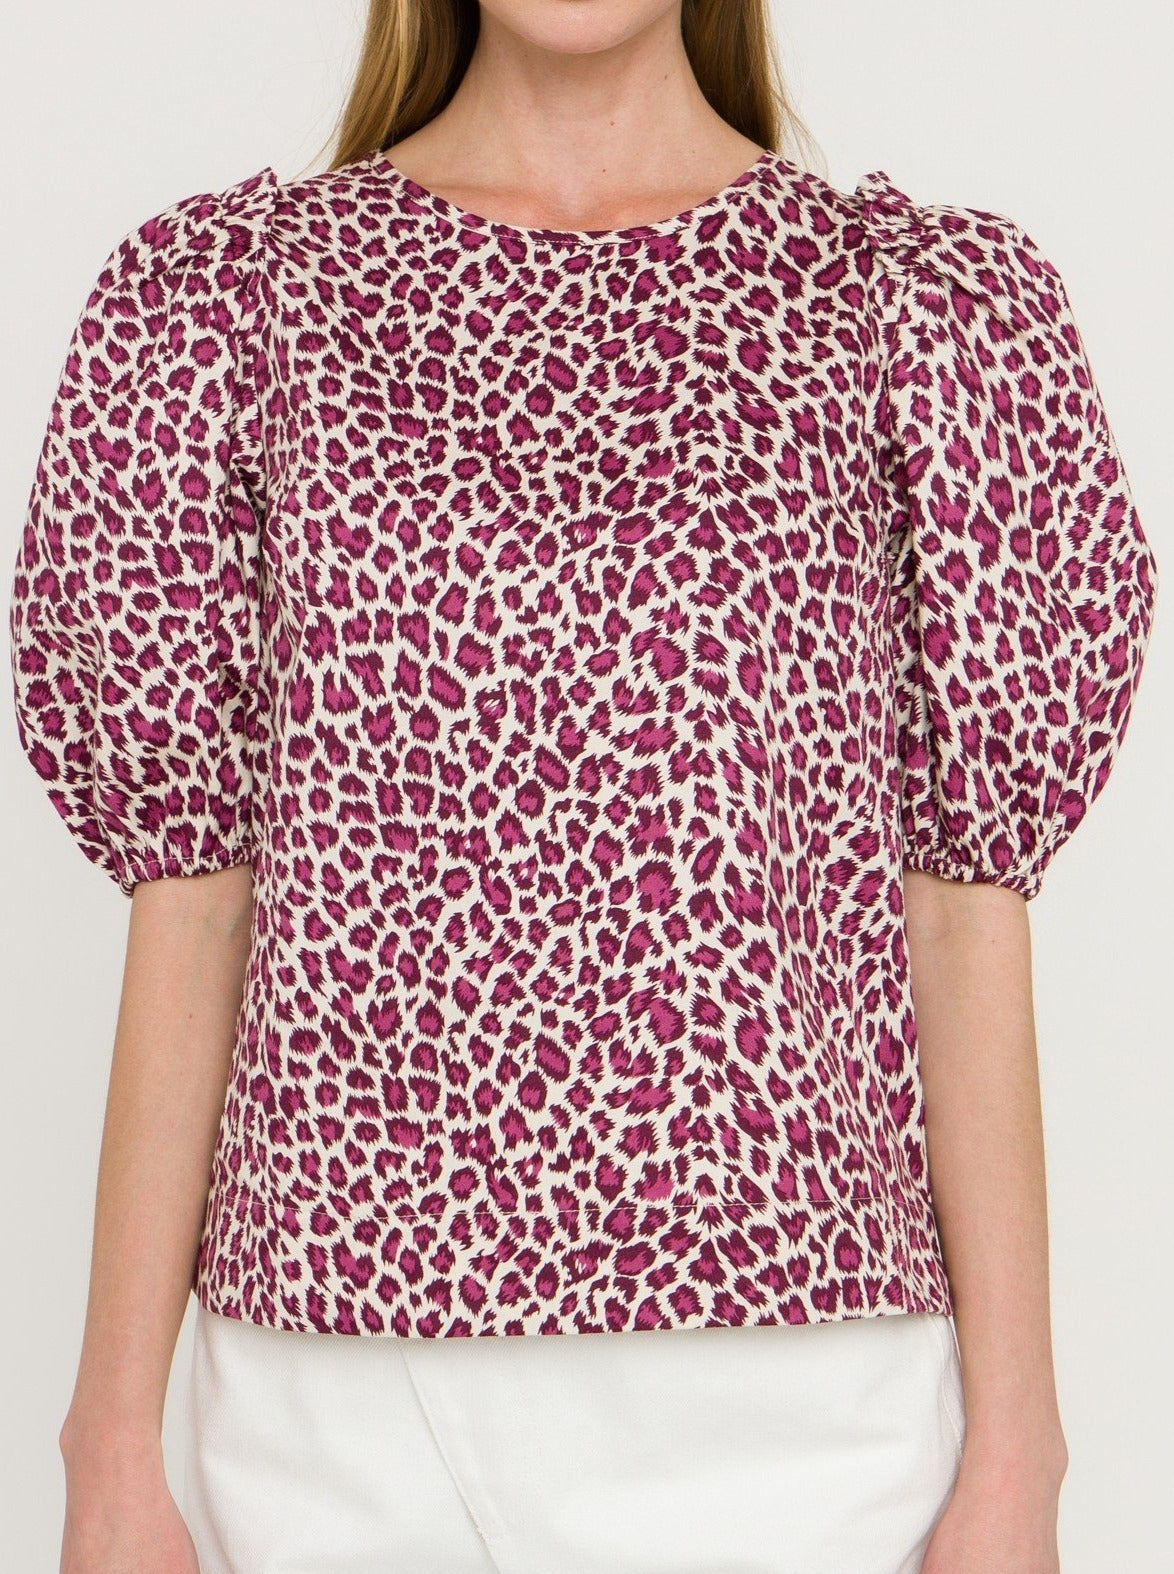 Ivory Plum Leopard Print Sleeveless Top